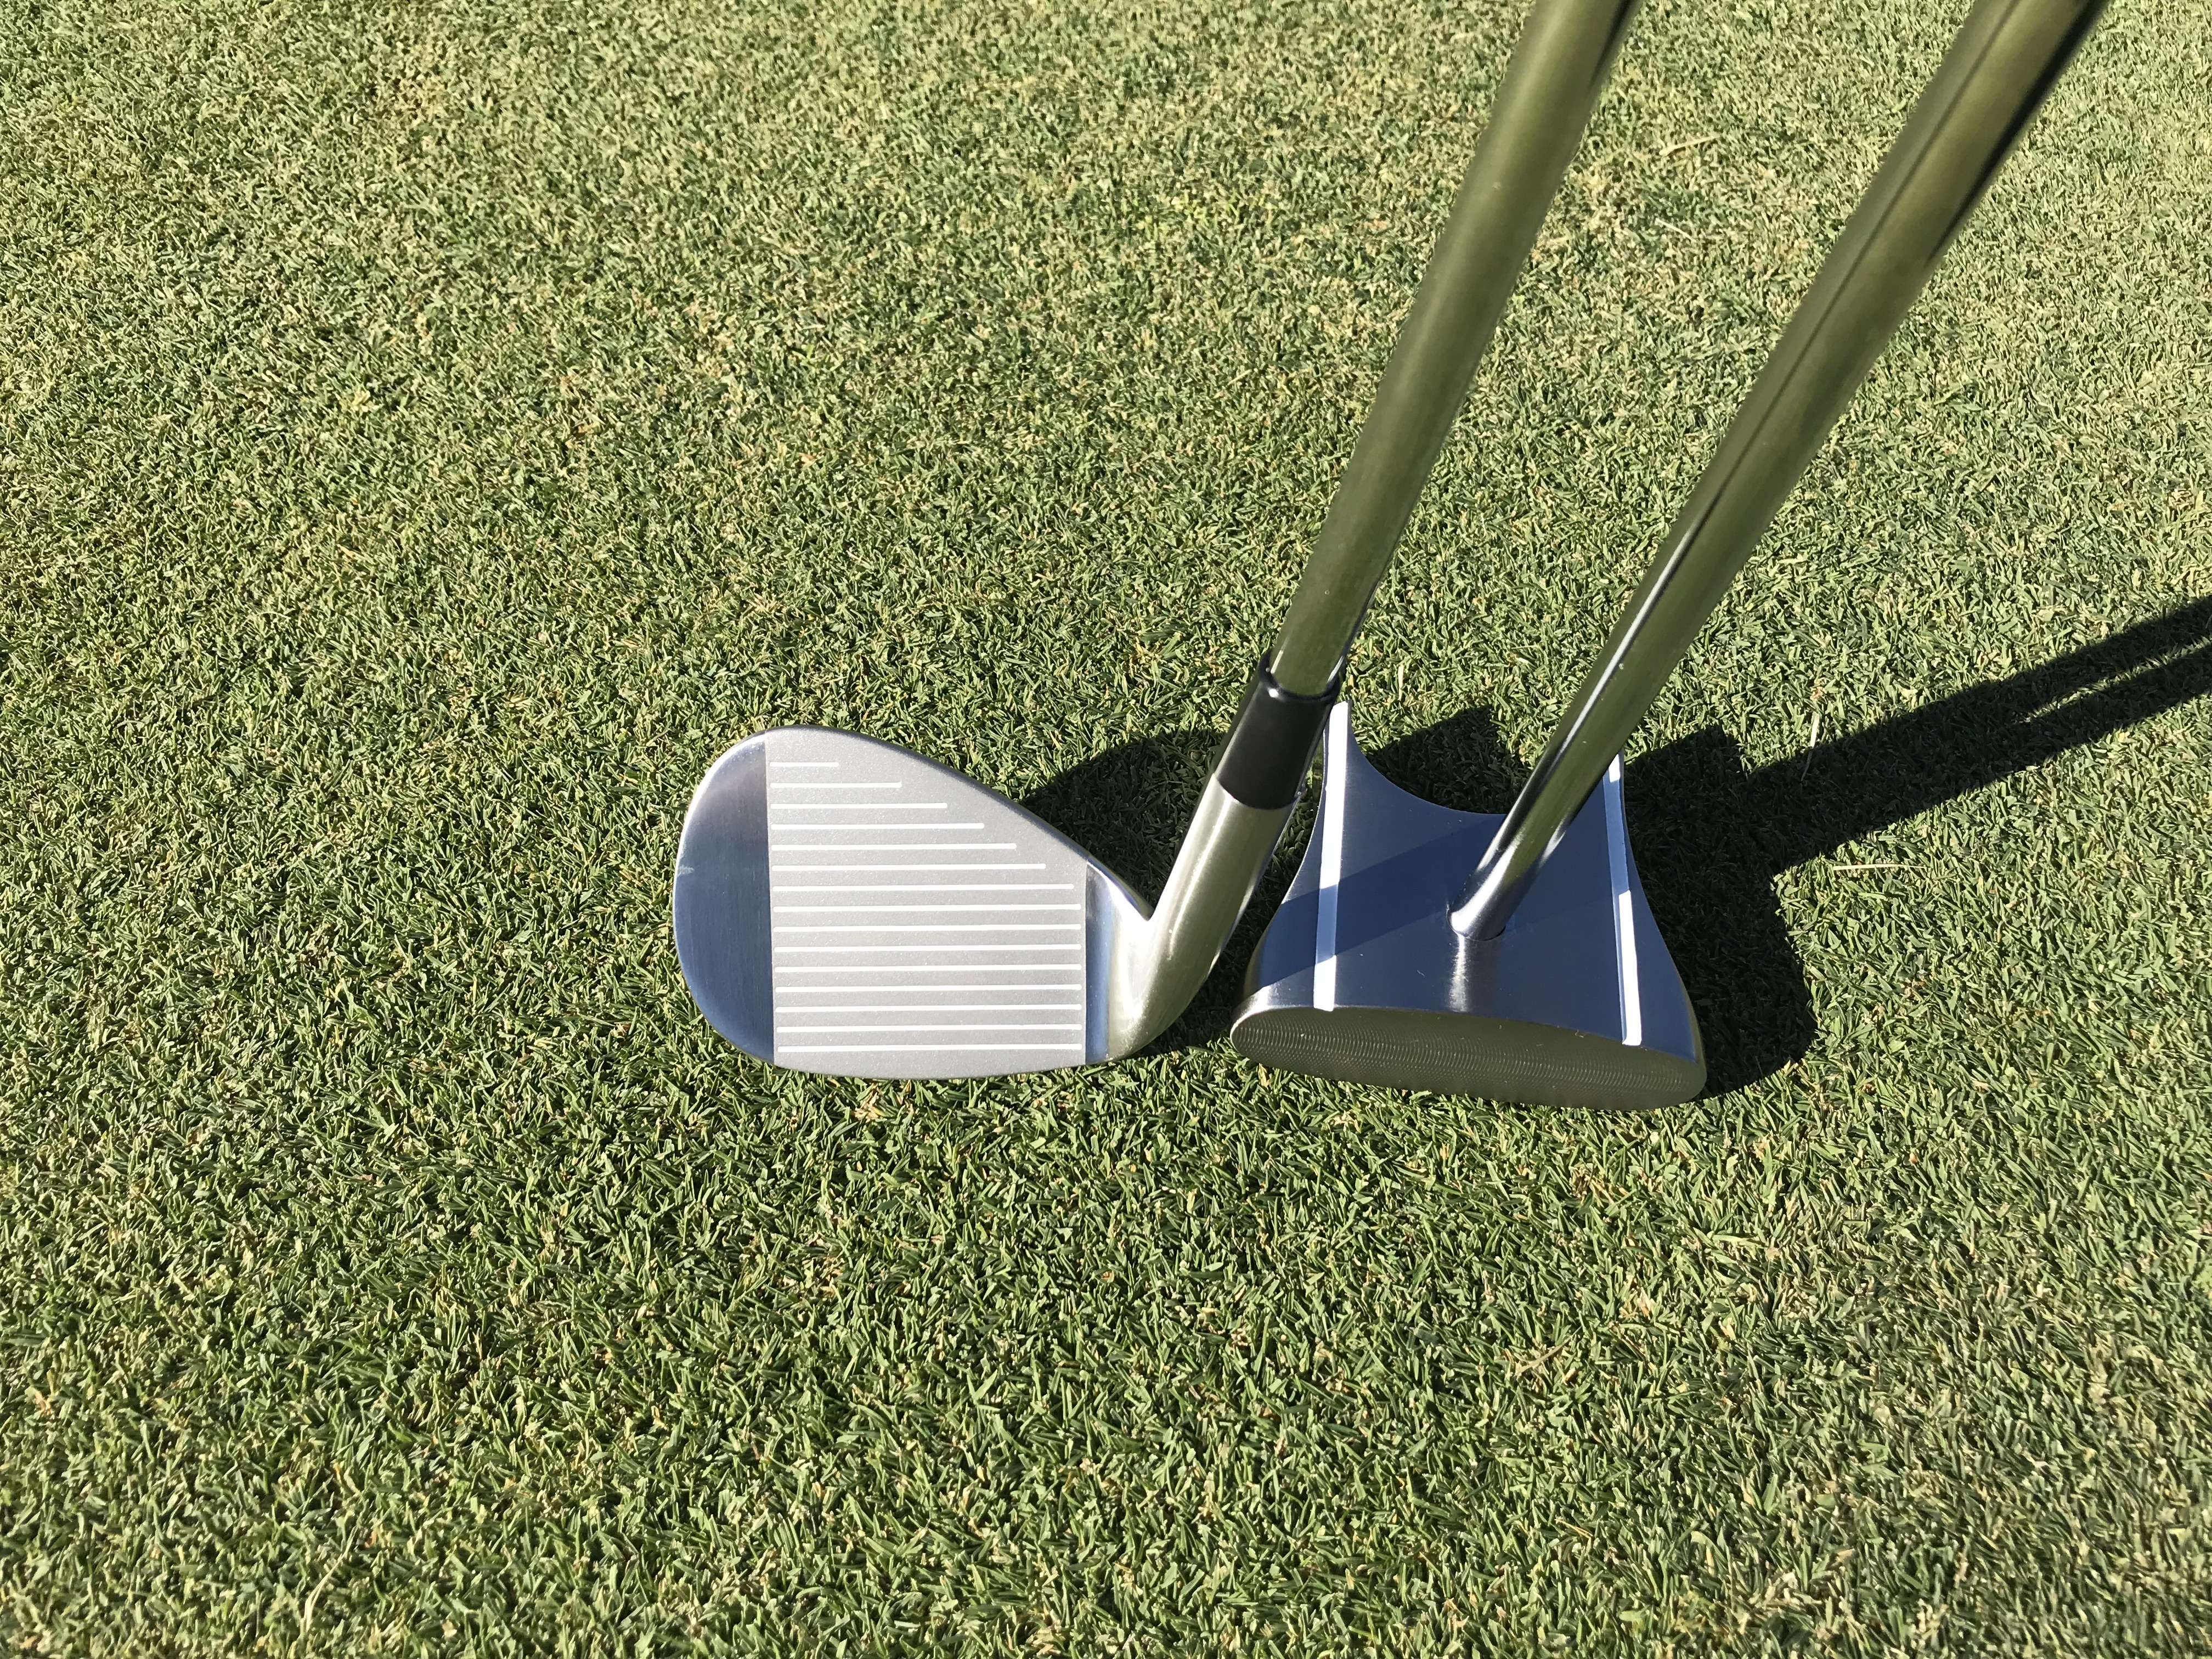 Chipping club and GP putter